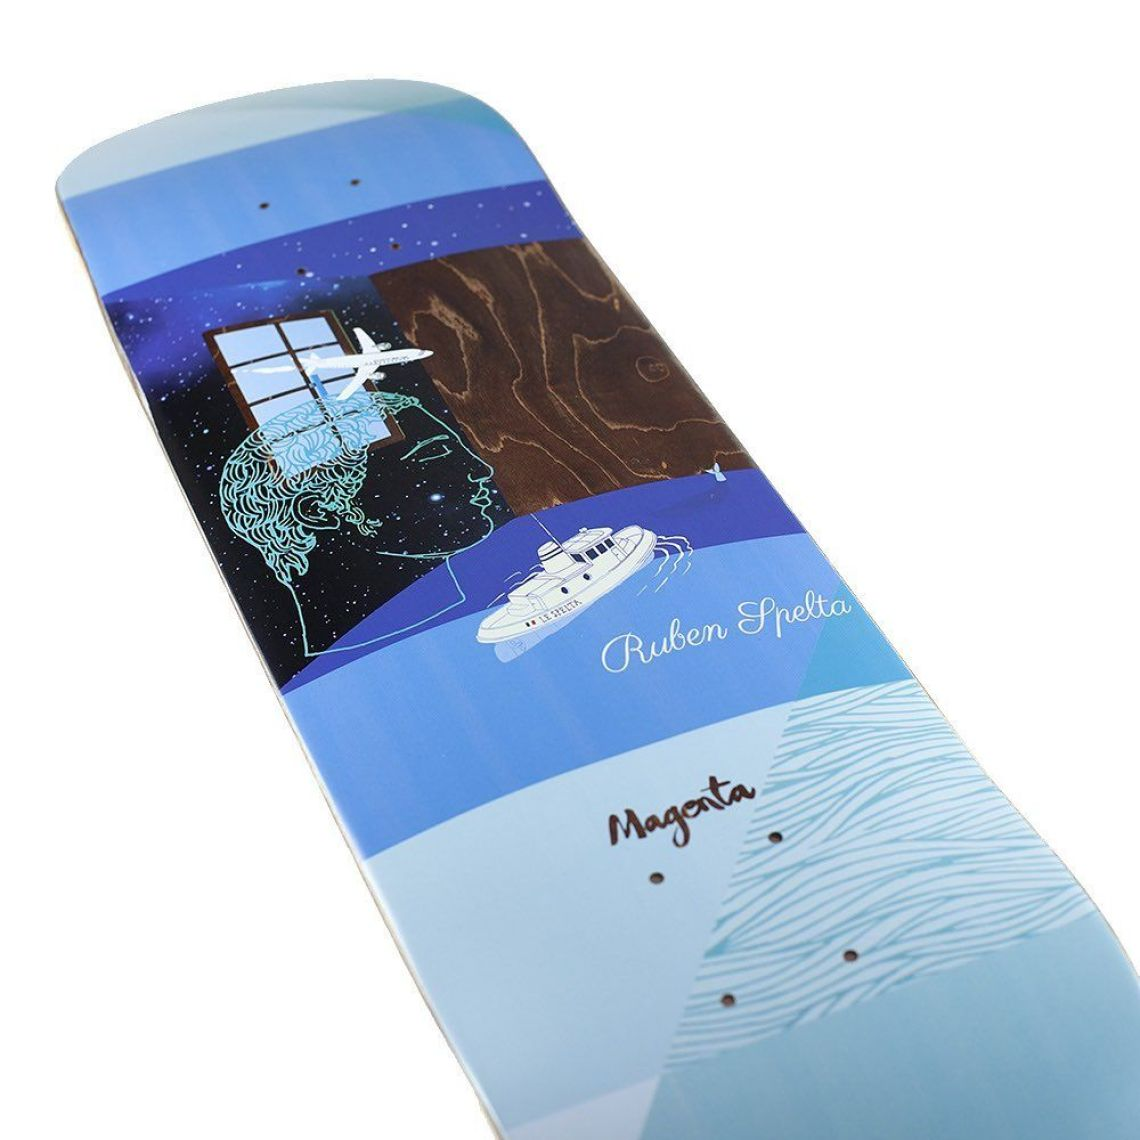 Sleep Board Series By Soy Panday For Magenta Skateboards 6